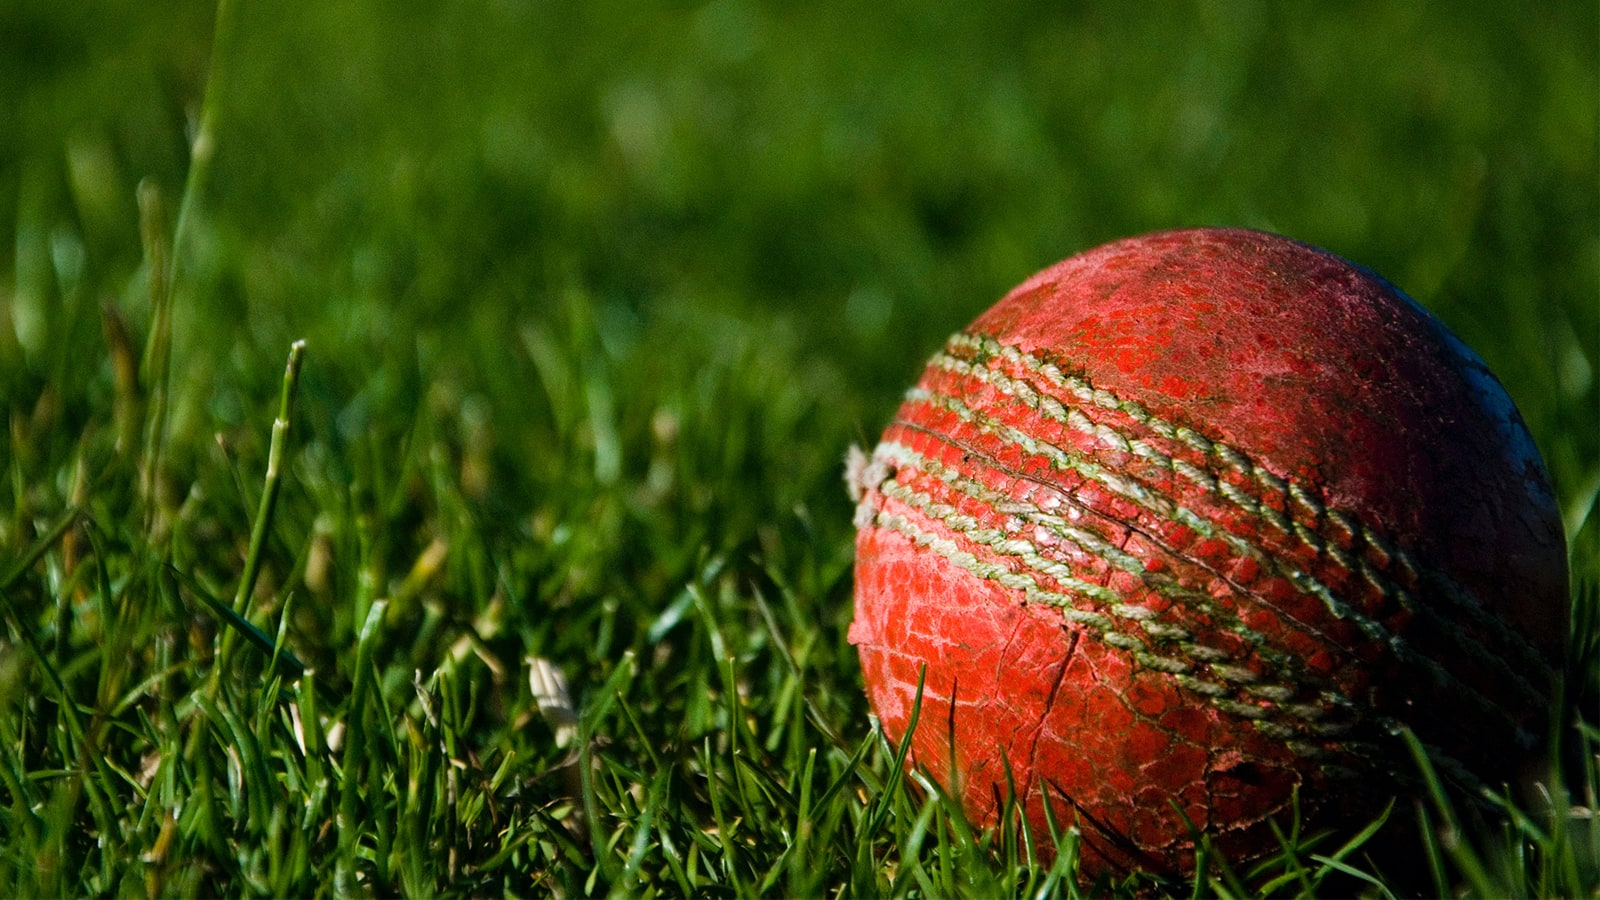 How to Watch IPL 2021 Live in the USA